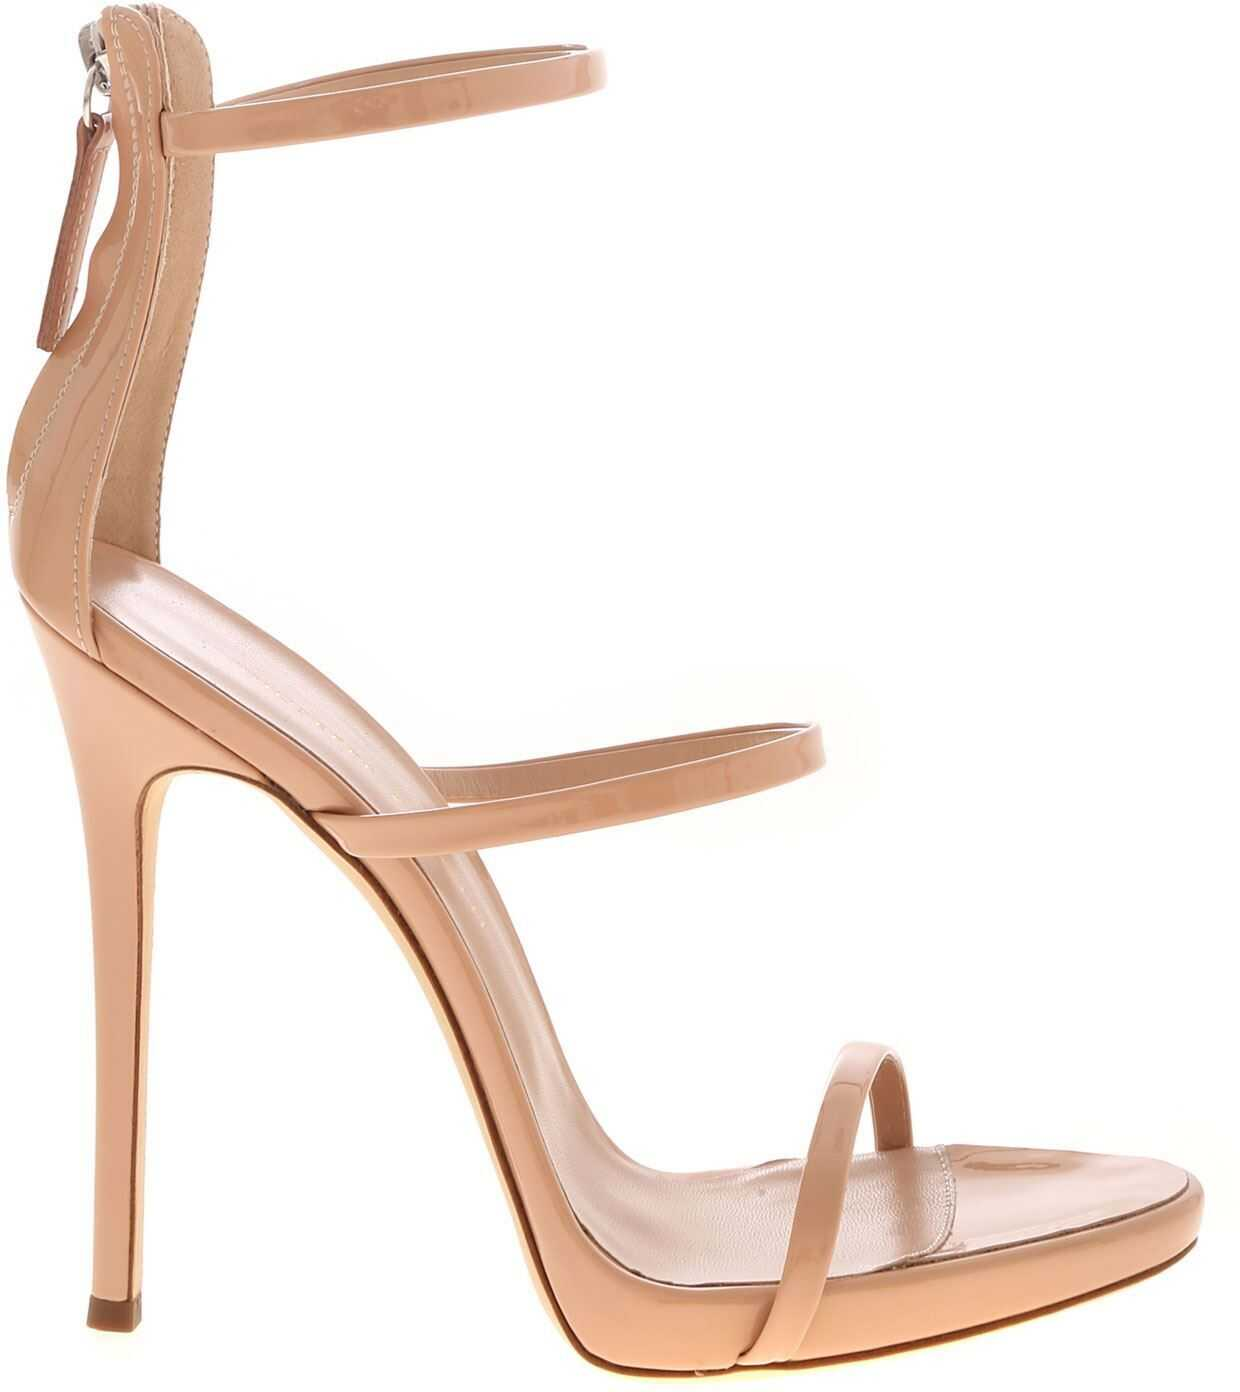 Giuseppe Zanotti Harmony Sandals In Powder Pink Color Pink